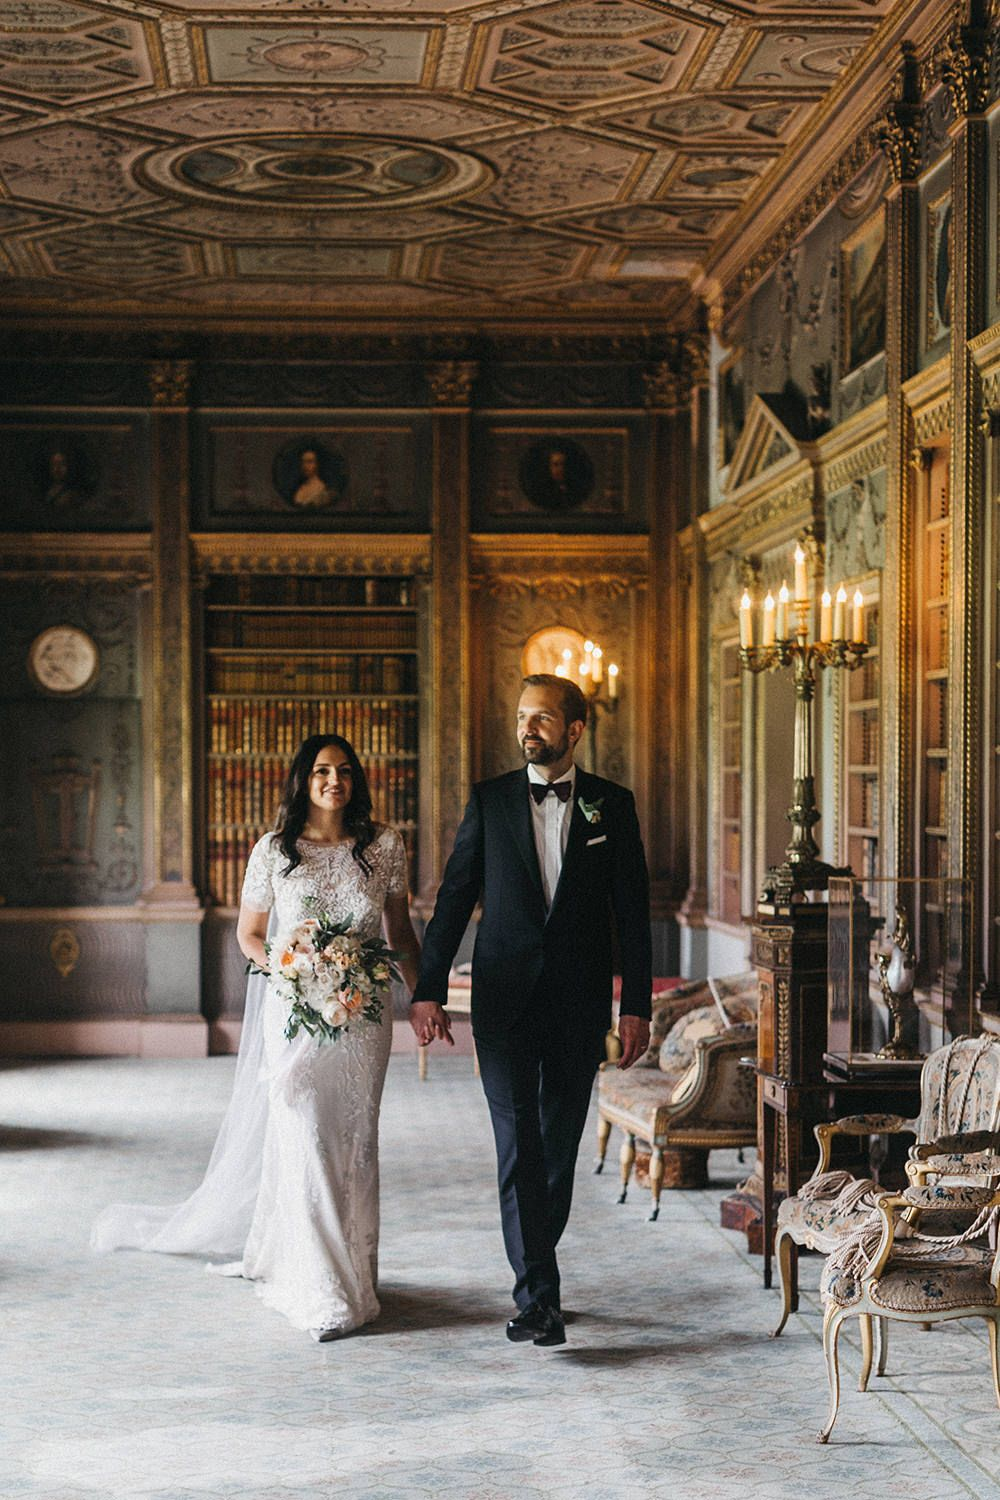 Stunning Syon Park Wedding With Quill Stationery Suite Syon Park